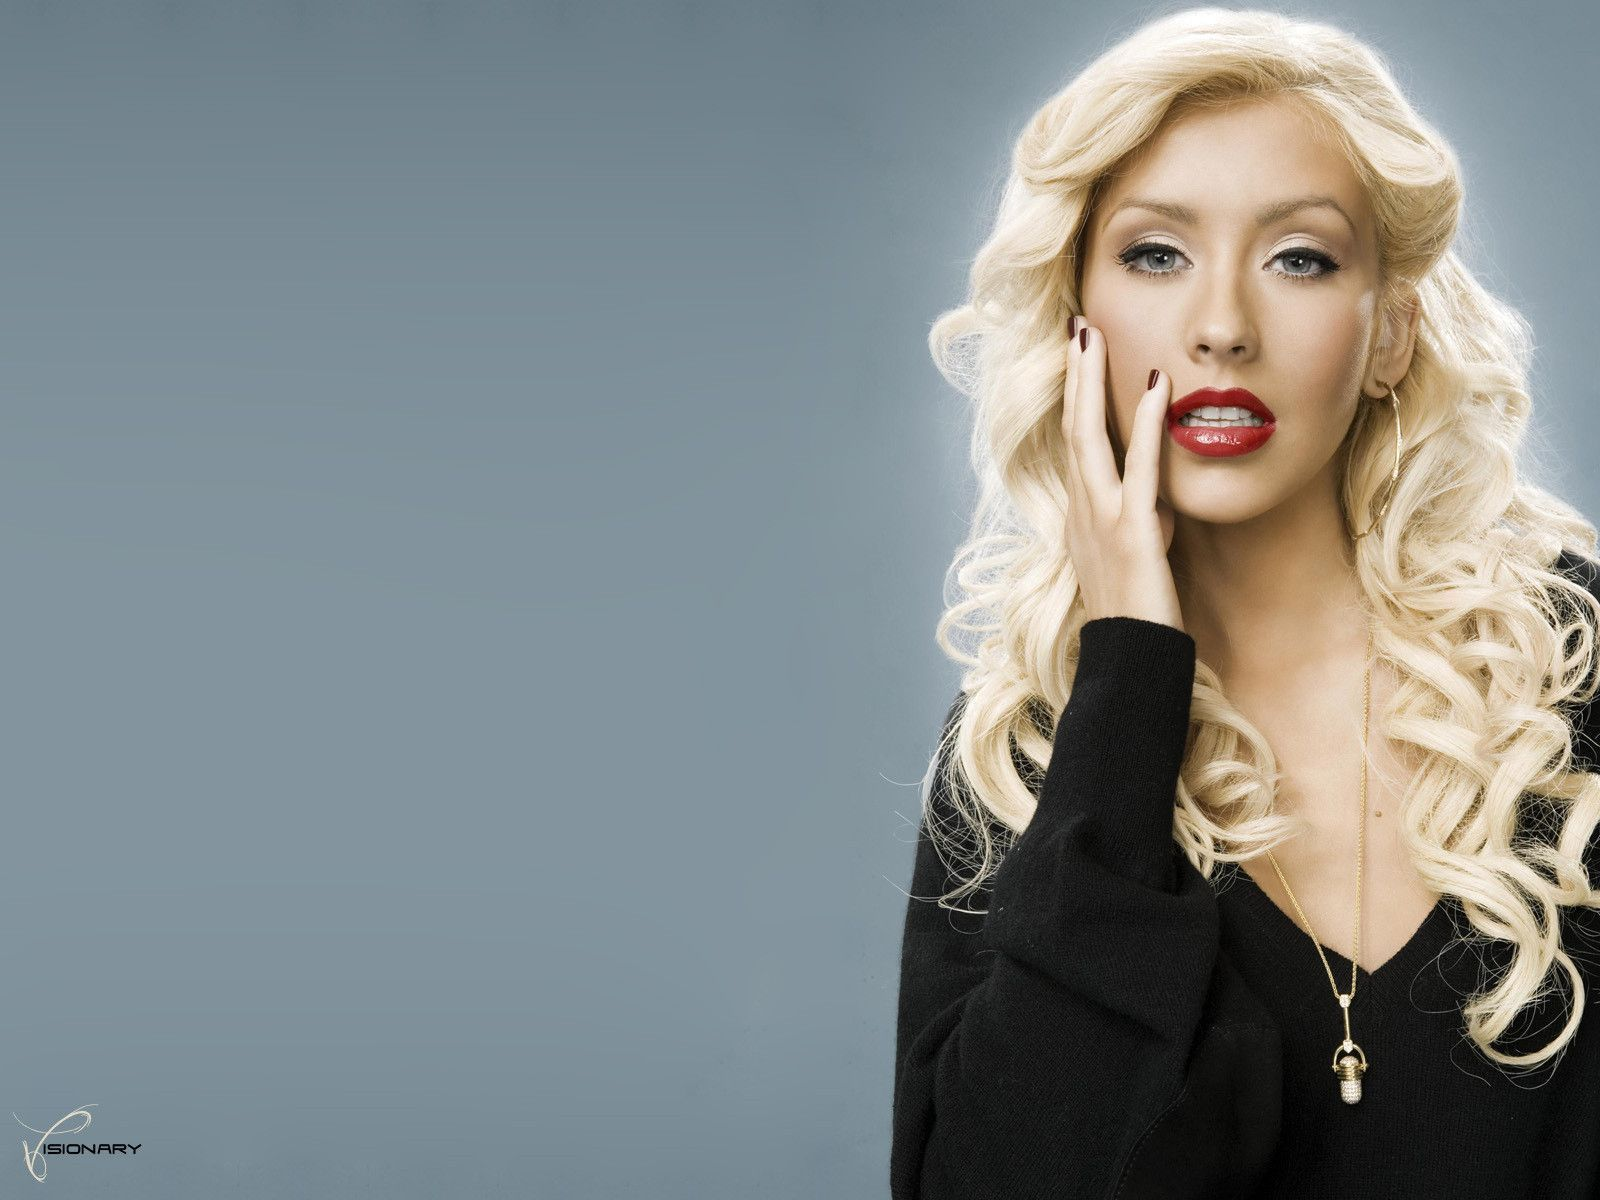 Christina Aguilera Wallpapers 2ZD9Q8O   4USkY 1600x1200